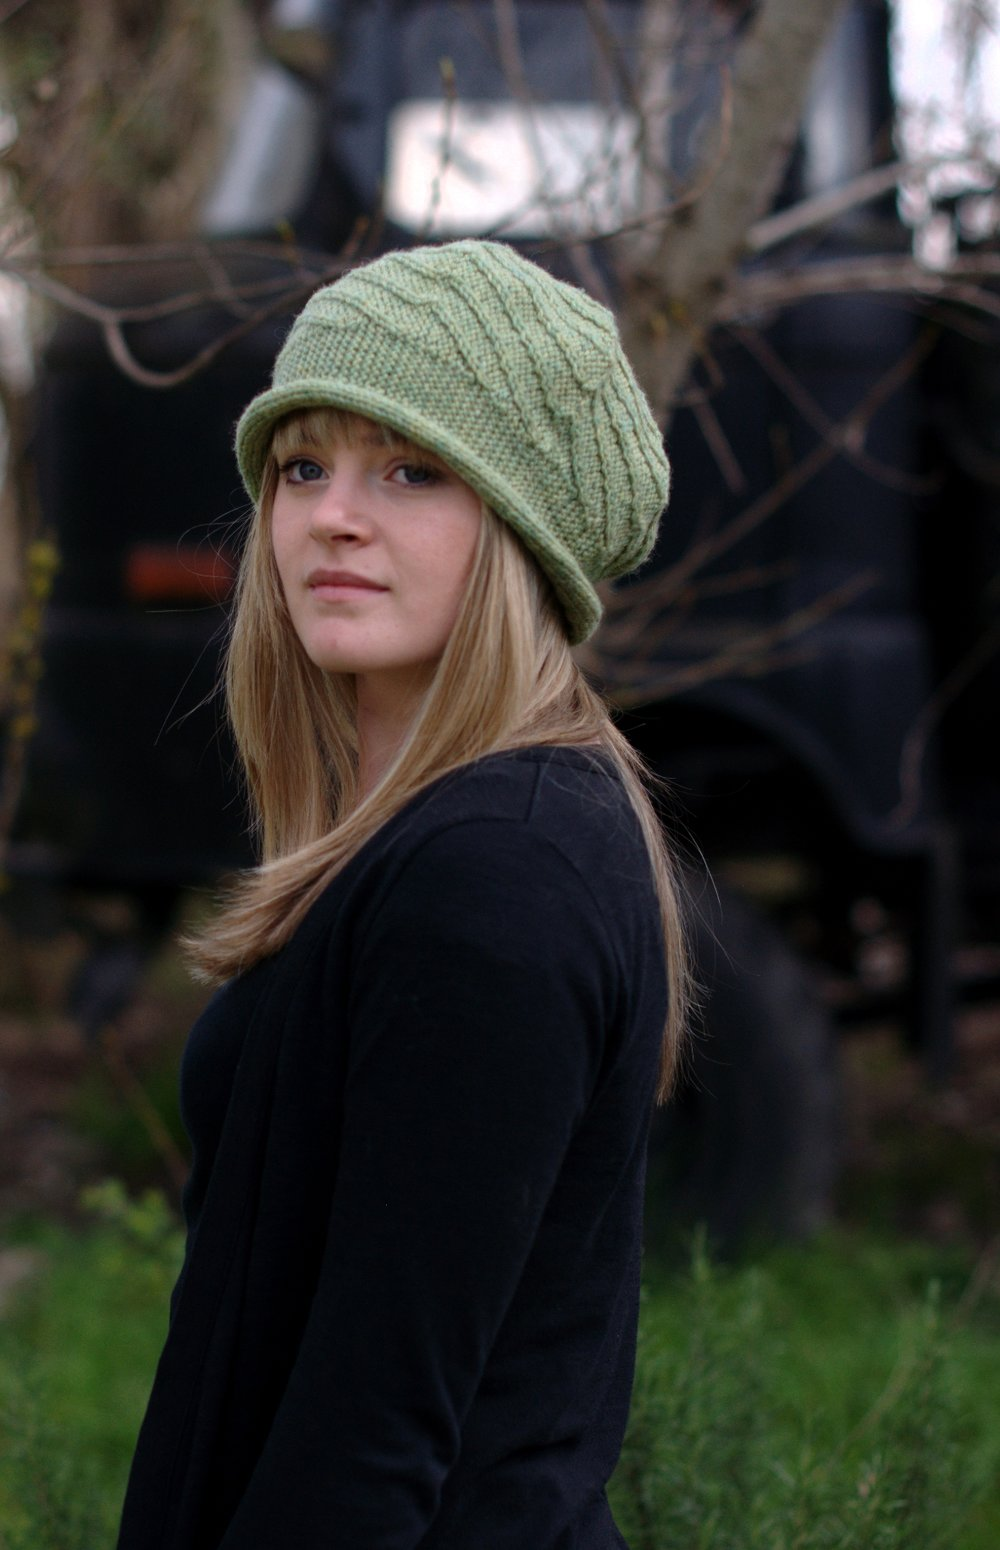 Vlora sideways knit brimmed beret knitting pattern